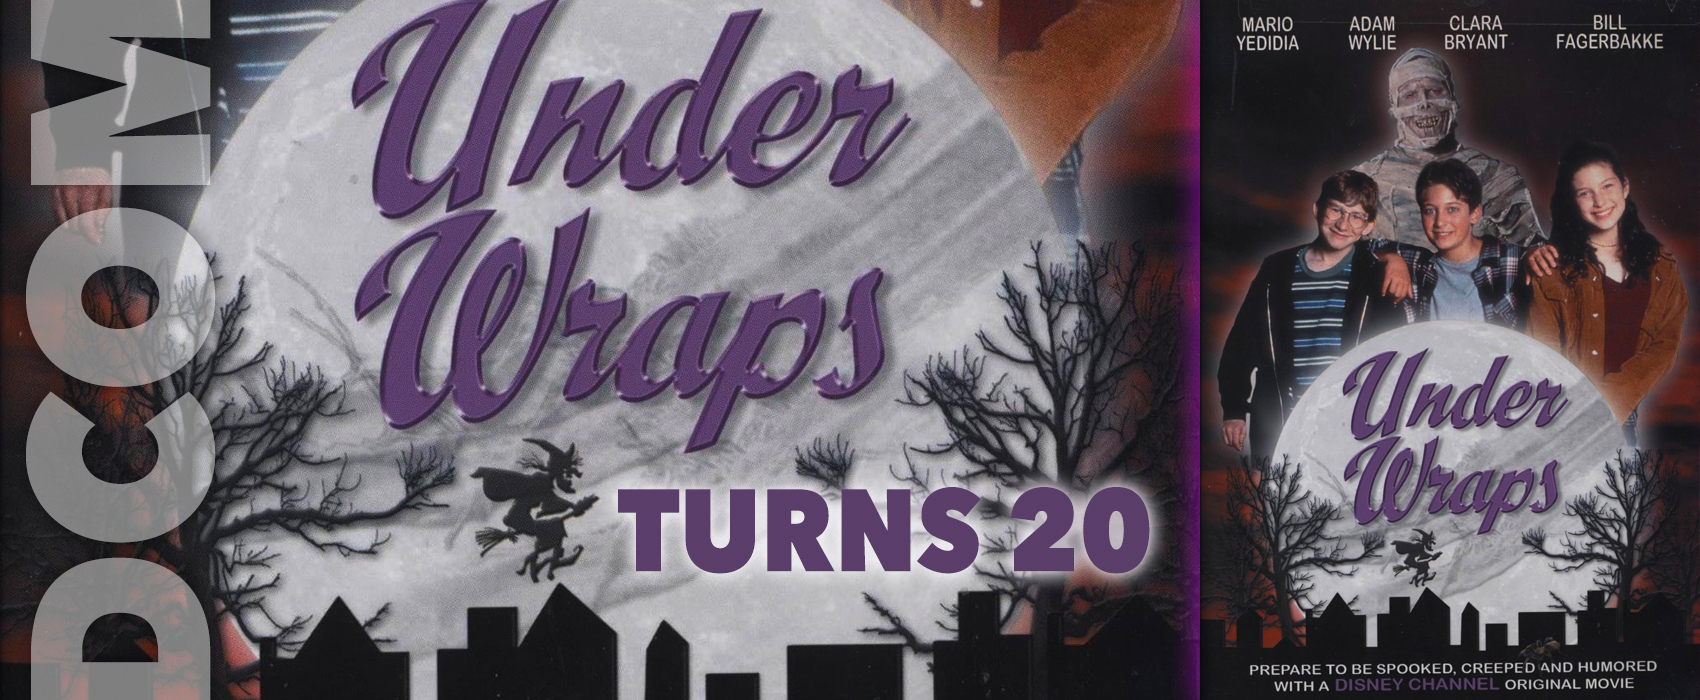 Halloween is Here and We Remember The FIRST DCOM in Under Wraps as it Celebrates 20 Years this Year!